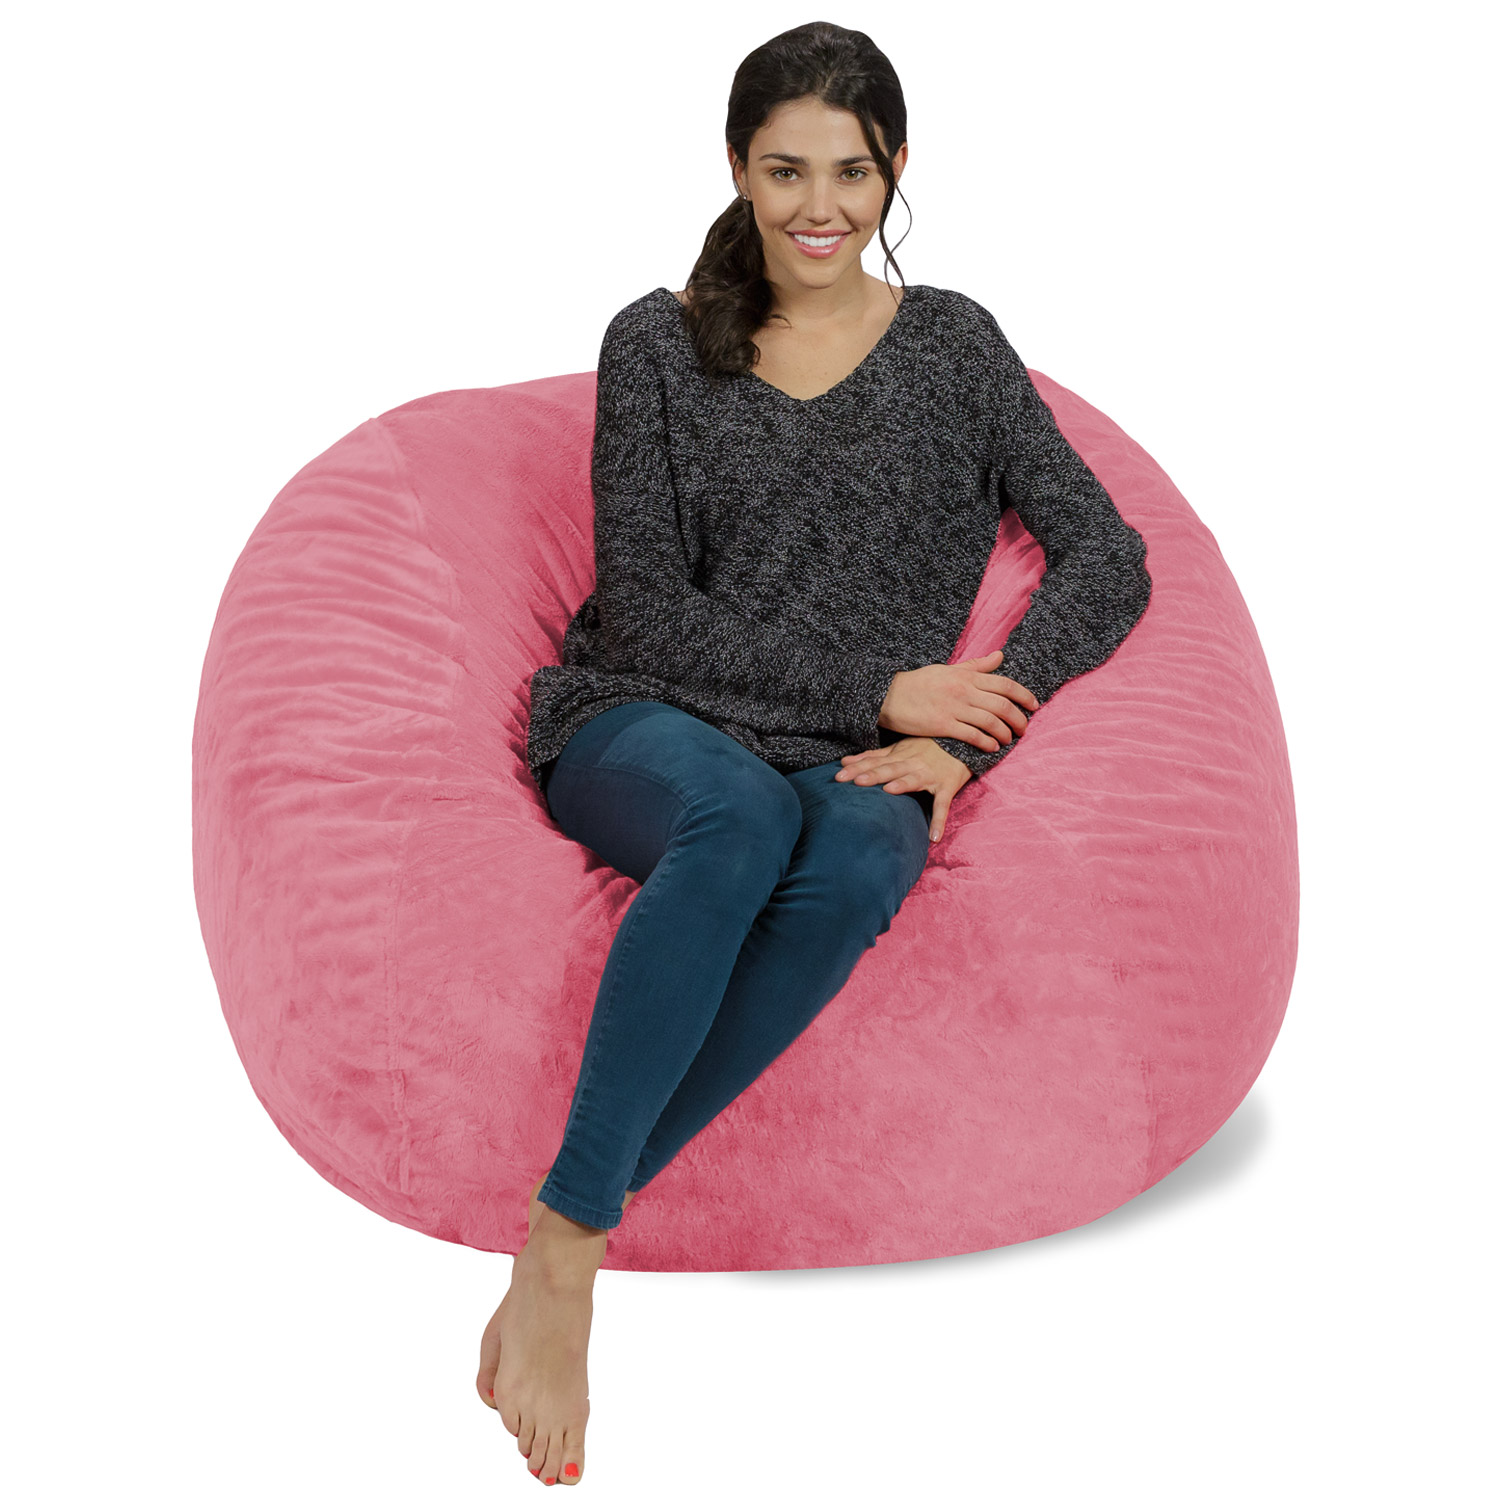 Foam Bean Bag Chair Memory Foam Bean Bag Chair 4 Ft Walmart